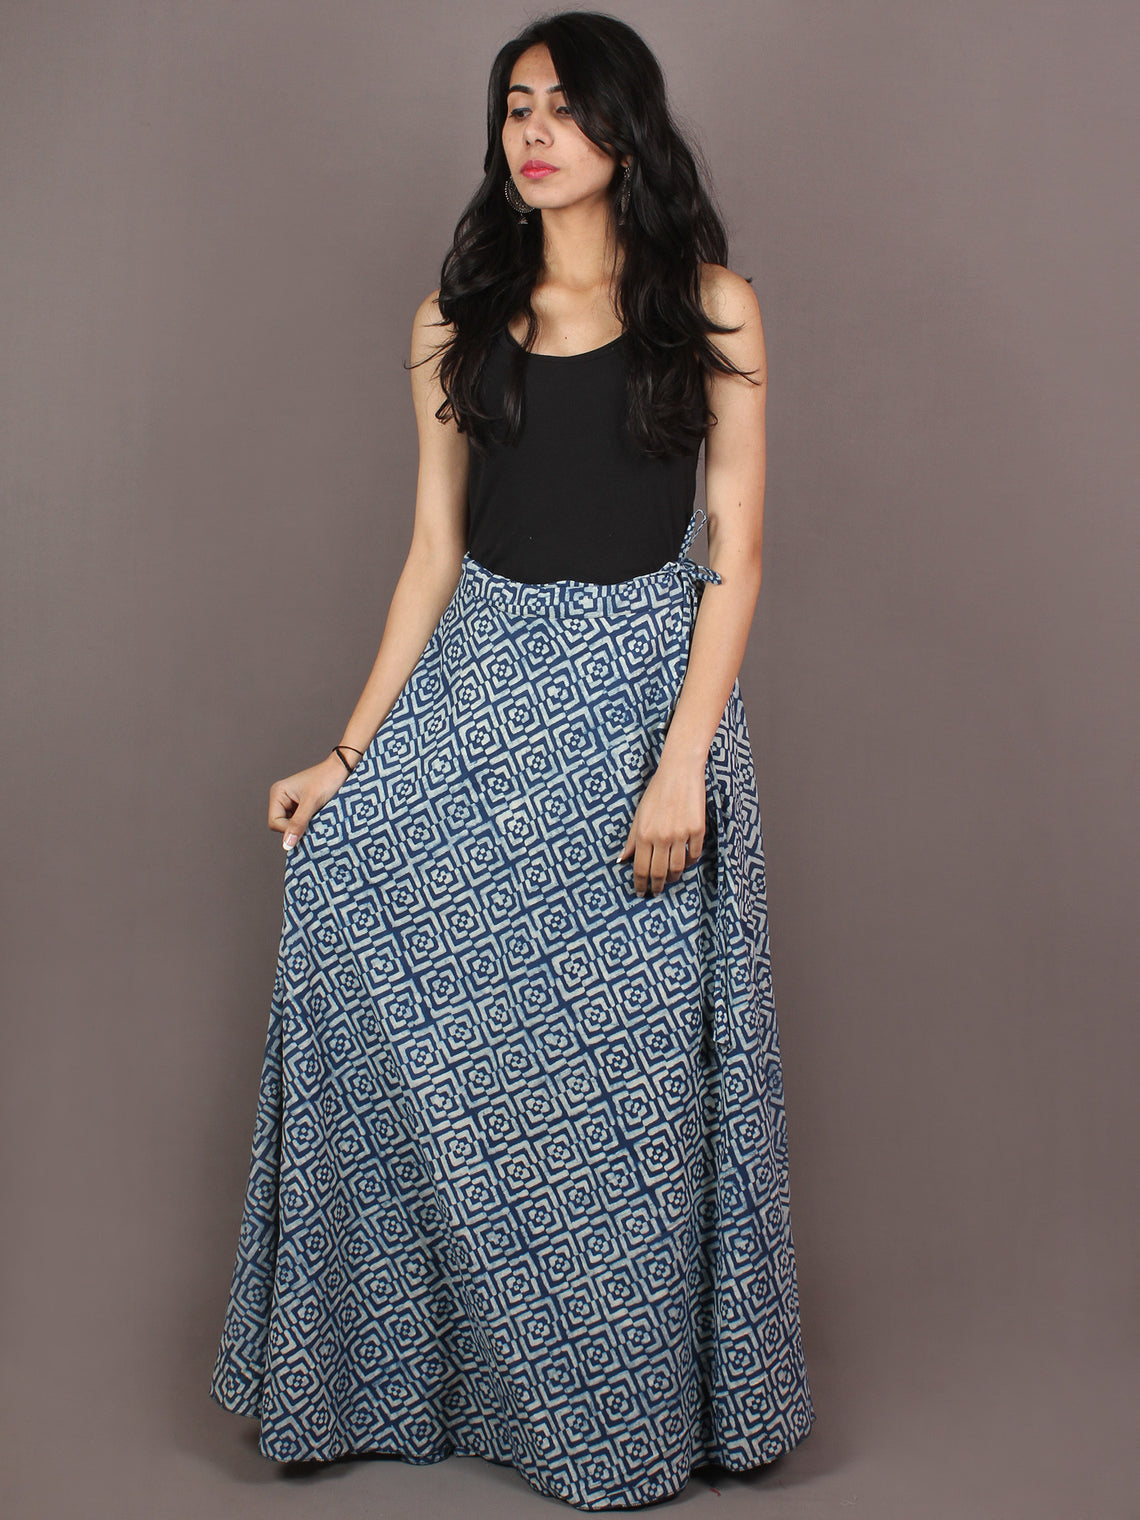 Hand Block Printed Wrap Around Skirt In Indigo White - S401009